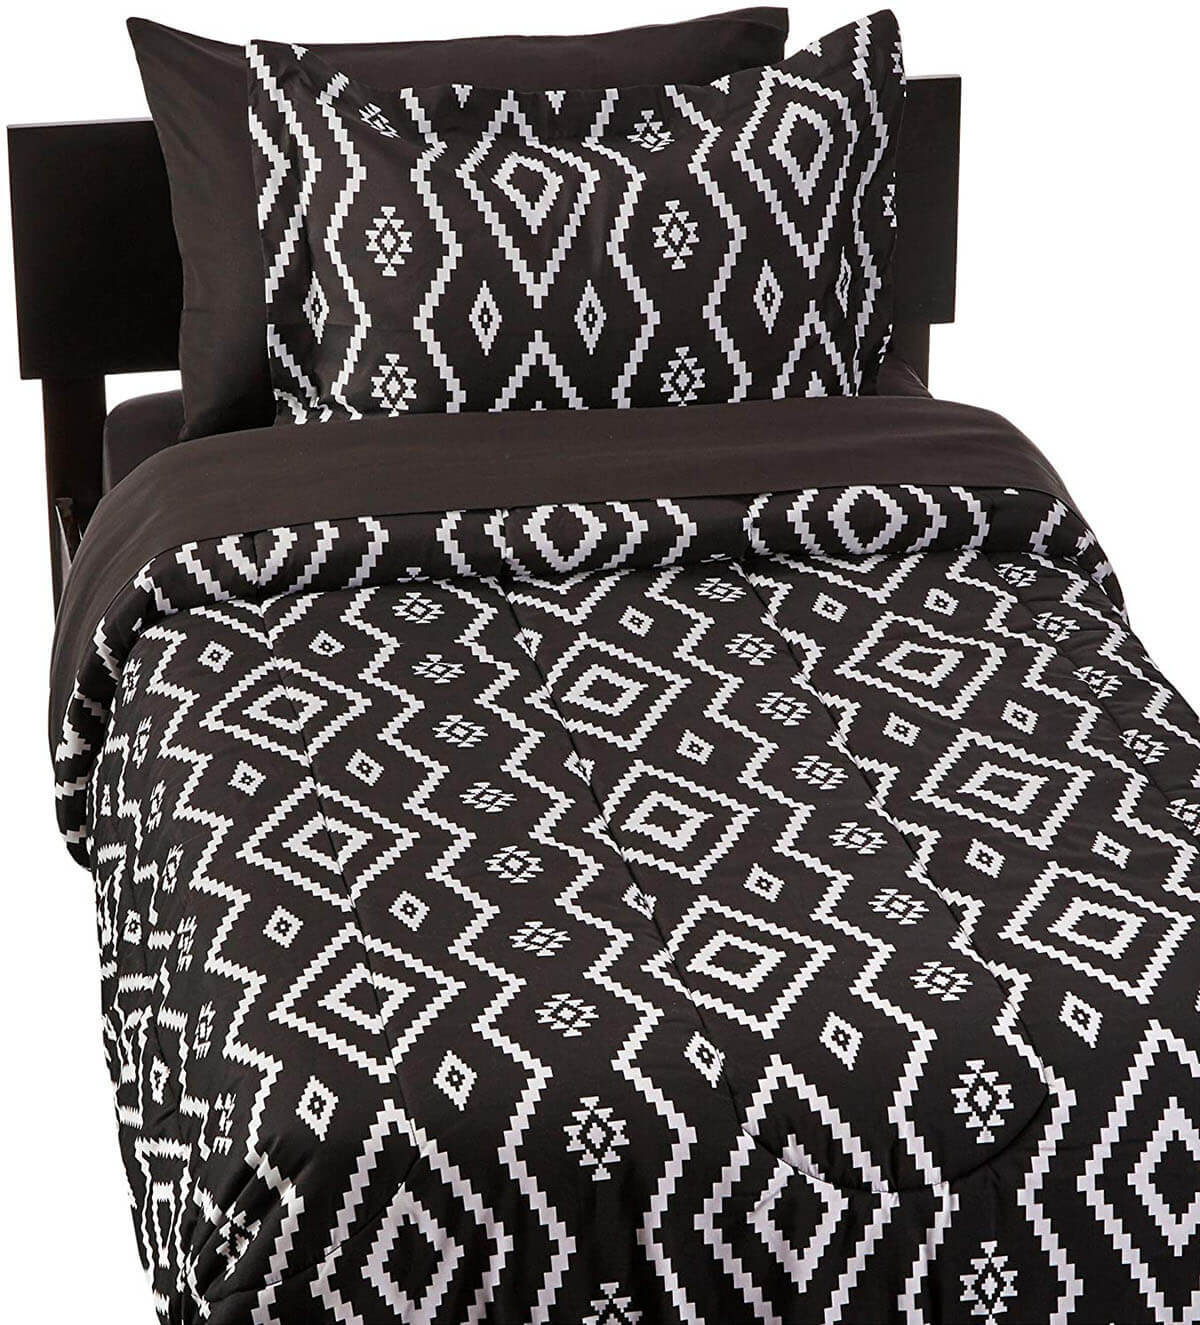 Navajo-Inspired Black and White Bedding